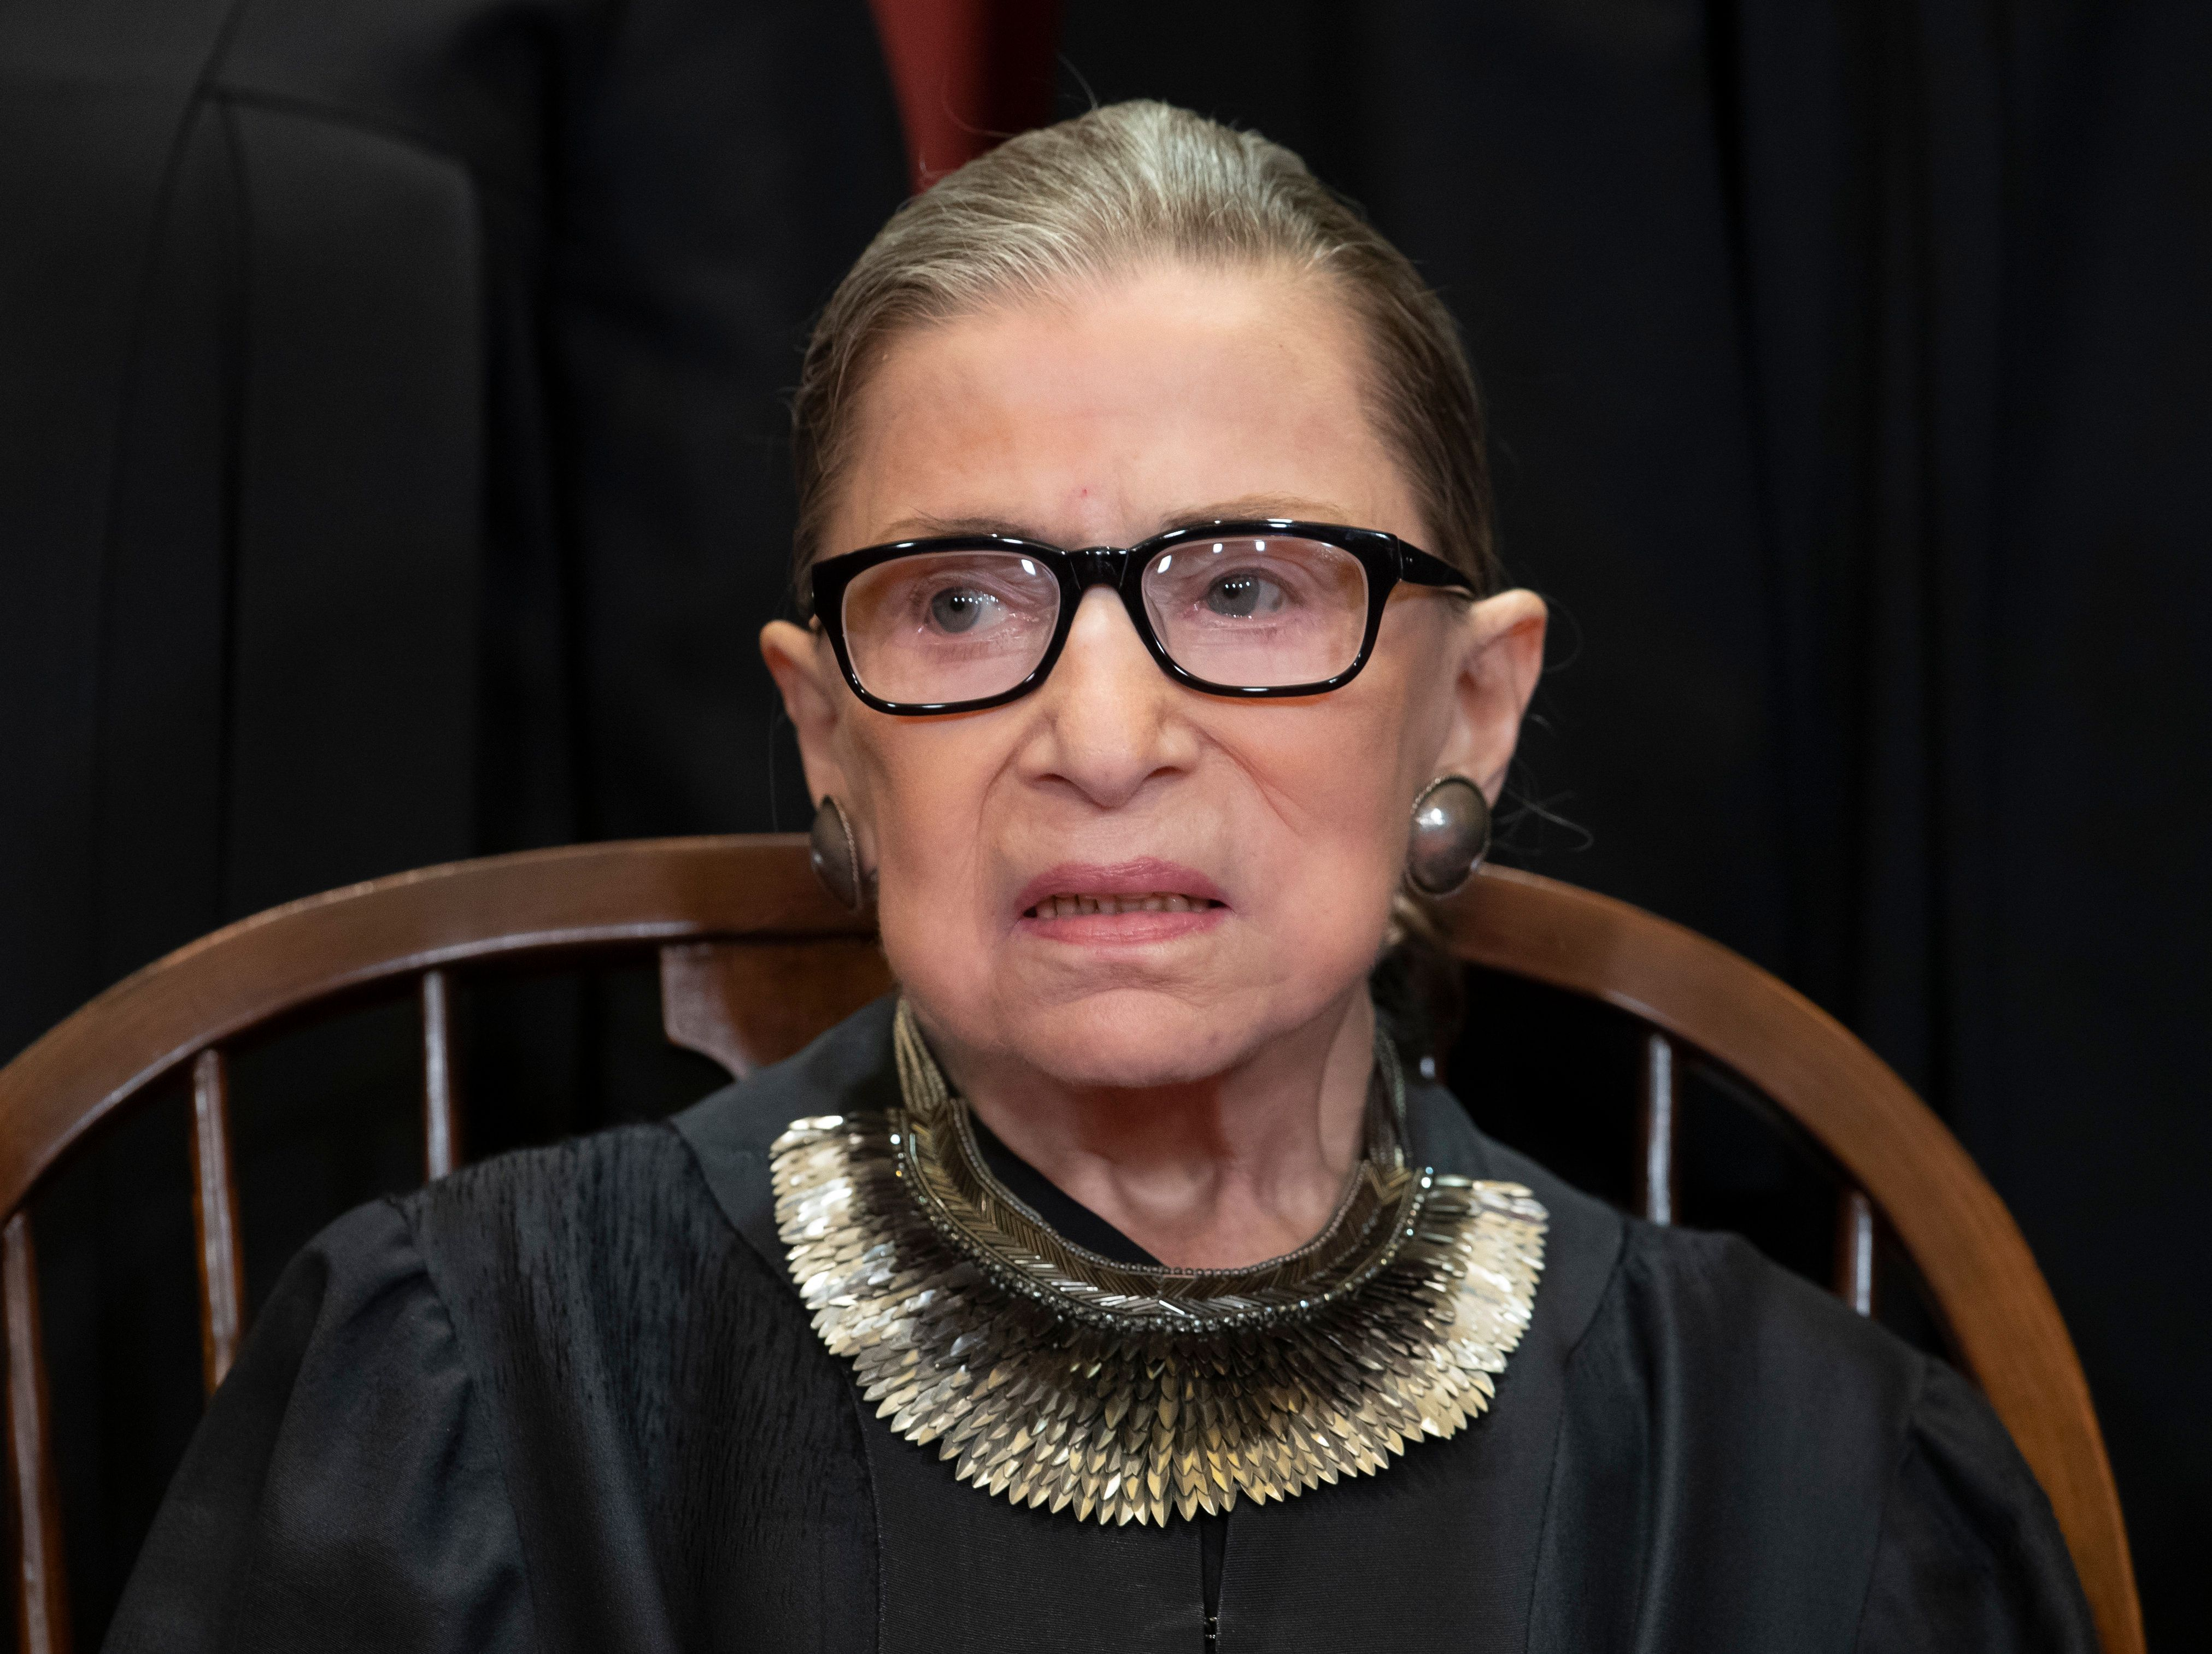 FILE - In this Nov. 30, 2018 file photo, Associate Justice Ruth Bader Ginsburg, nominated by President Bill Clinton, sits with fellow Supreme Court justices for a group portrait at the Supreme Court Building in Washington, Friday. The Supreme Court says Justice Ruth Bader Ginsburg has undergone surgery to remove two malignant growths from her left lung. It is Ginsburg's third bout with cancer since joining the court in 1993. (AP Photo/J. Scott Applewhite)